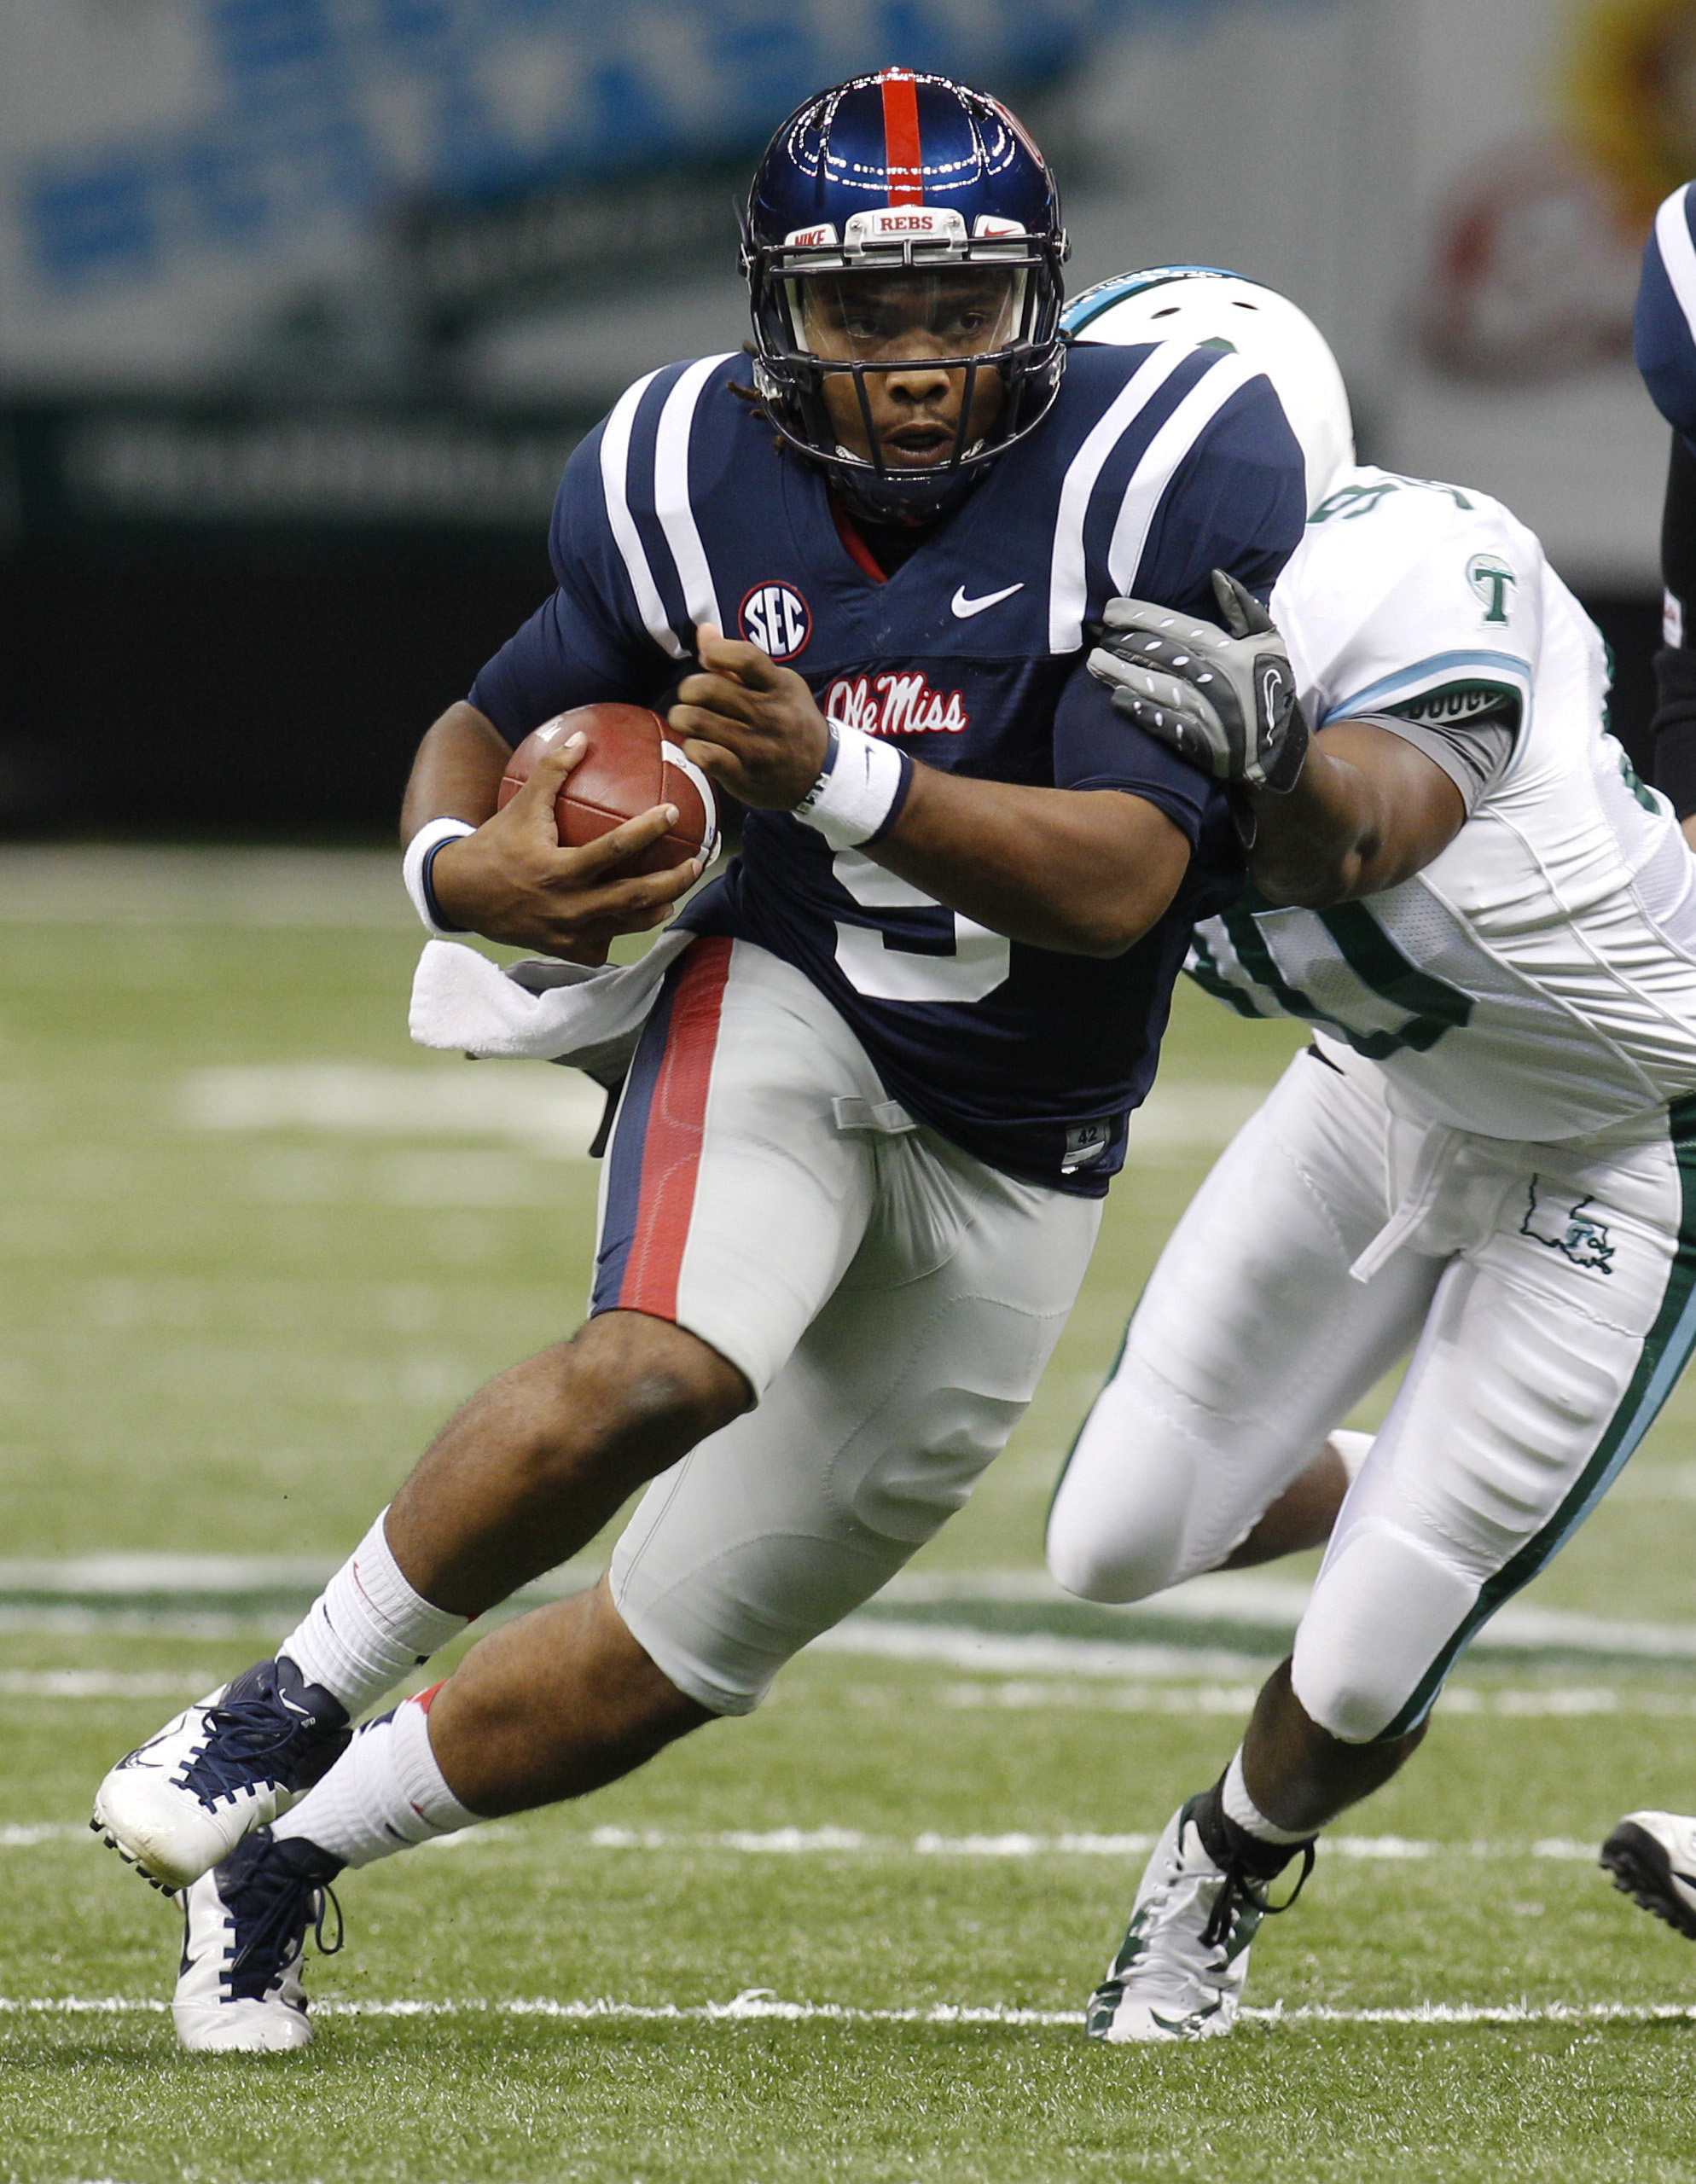 Mississippi quarterback Maikhail Miller (9) scrambles away from Tulane defensive end Wendell Beckwith (90) in the second half of an NCAA college football game in New Orleans,  Saturday, Sept. 22, 2012. (AP Photo/Bill Haber)